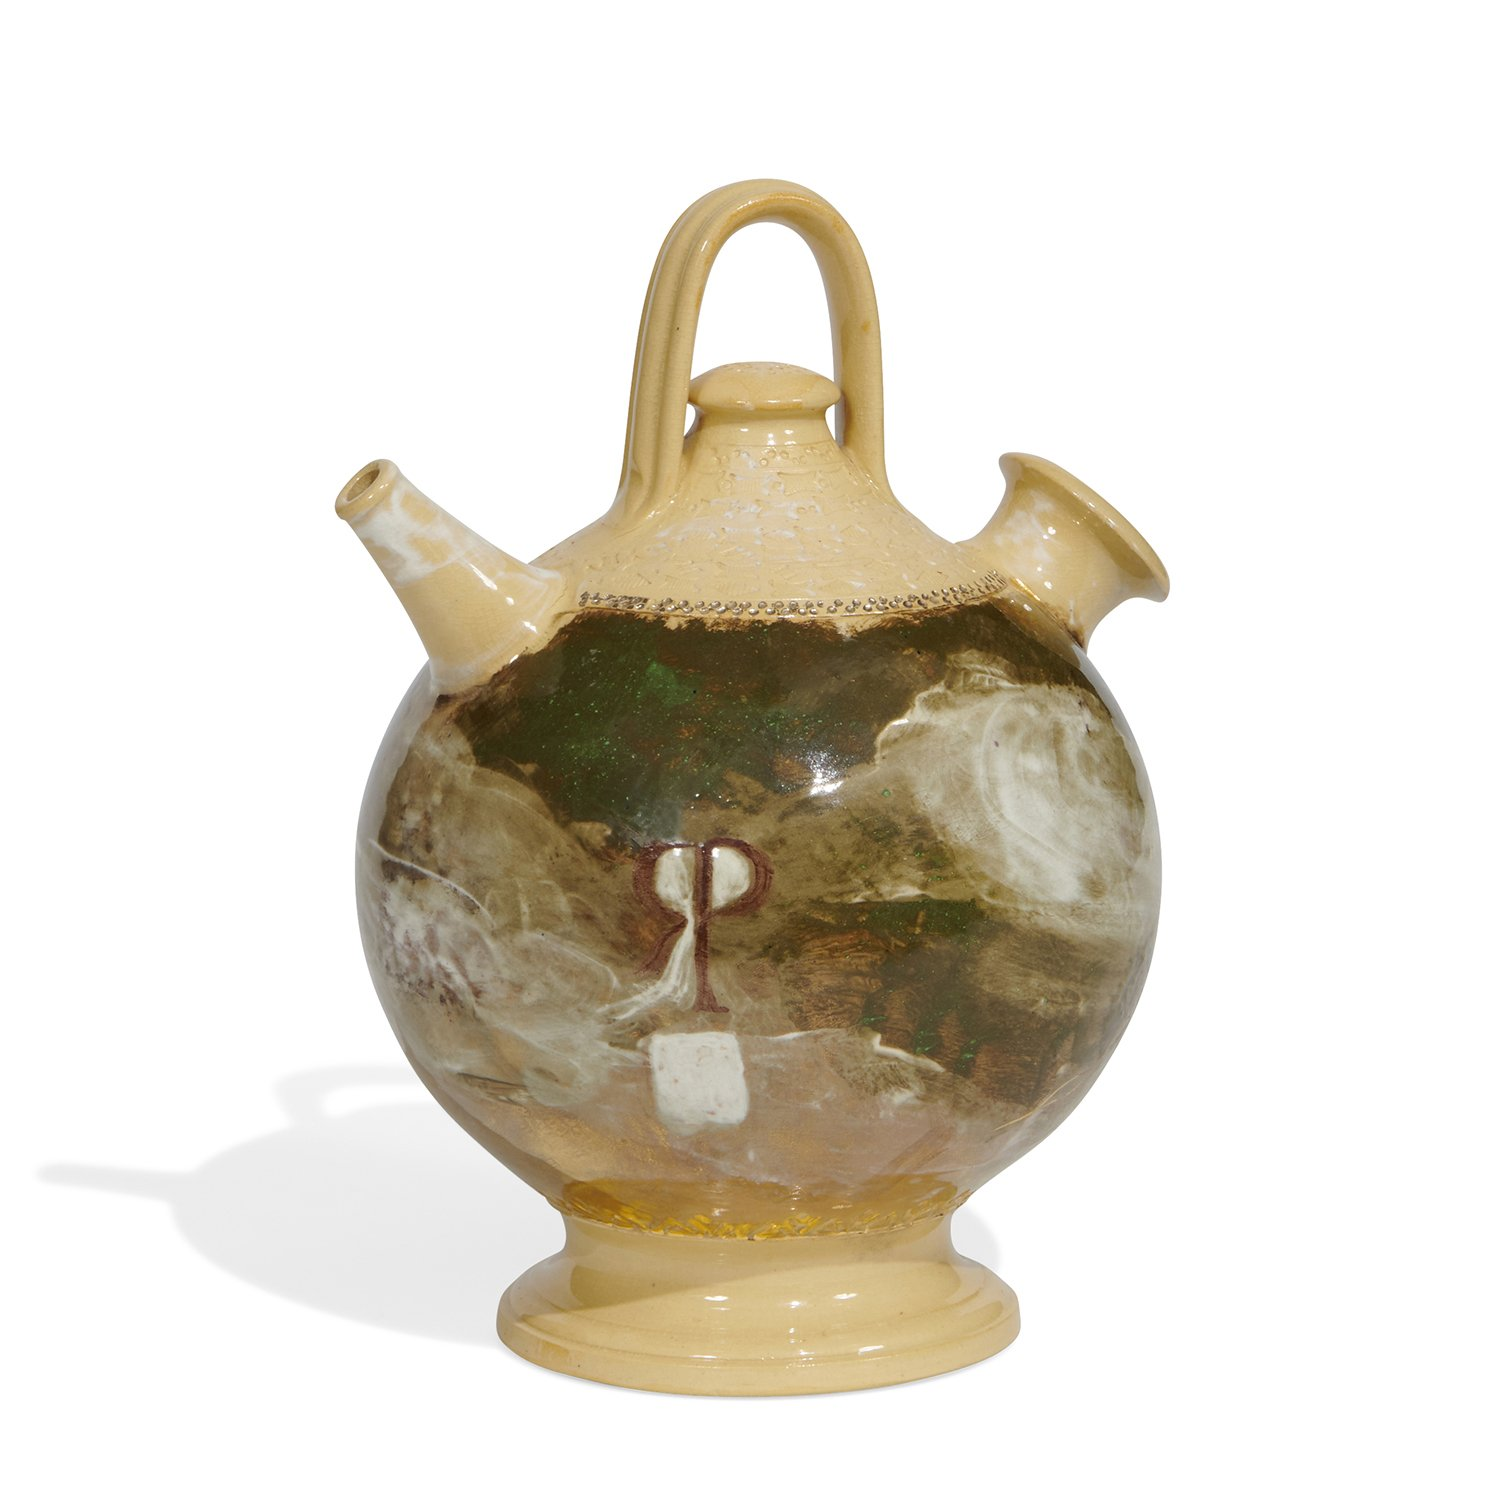 Alfred Laurens Brennan (1853-1921) for Rookwood Pottery earthenware Spanish water jug with decoration consisting of a lobster and th...